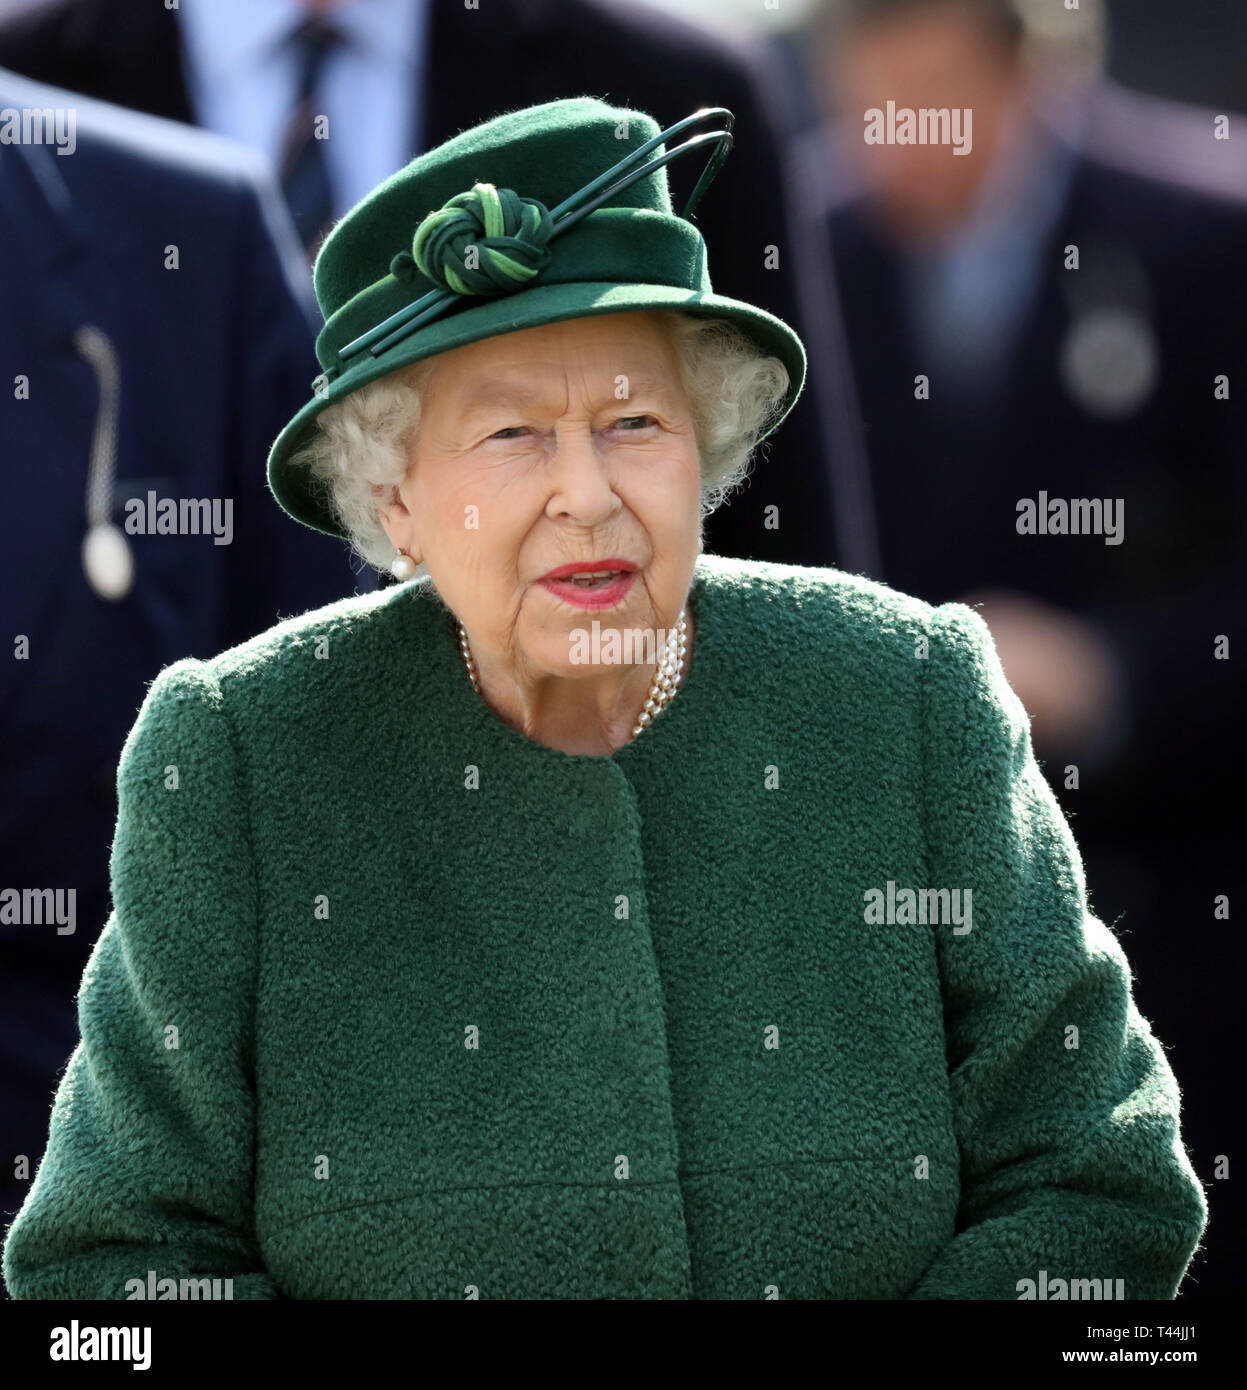 Queen Elizabeth II arrives during day two of the Dubai Duty